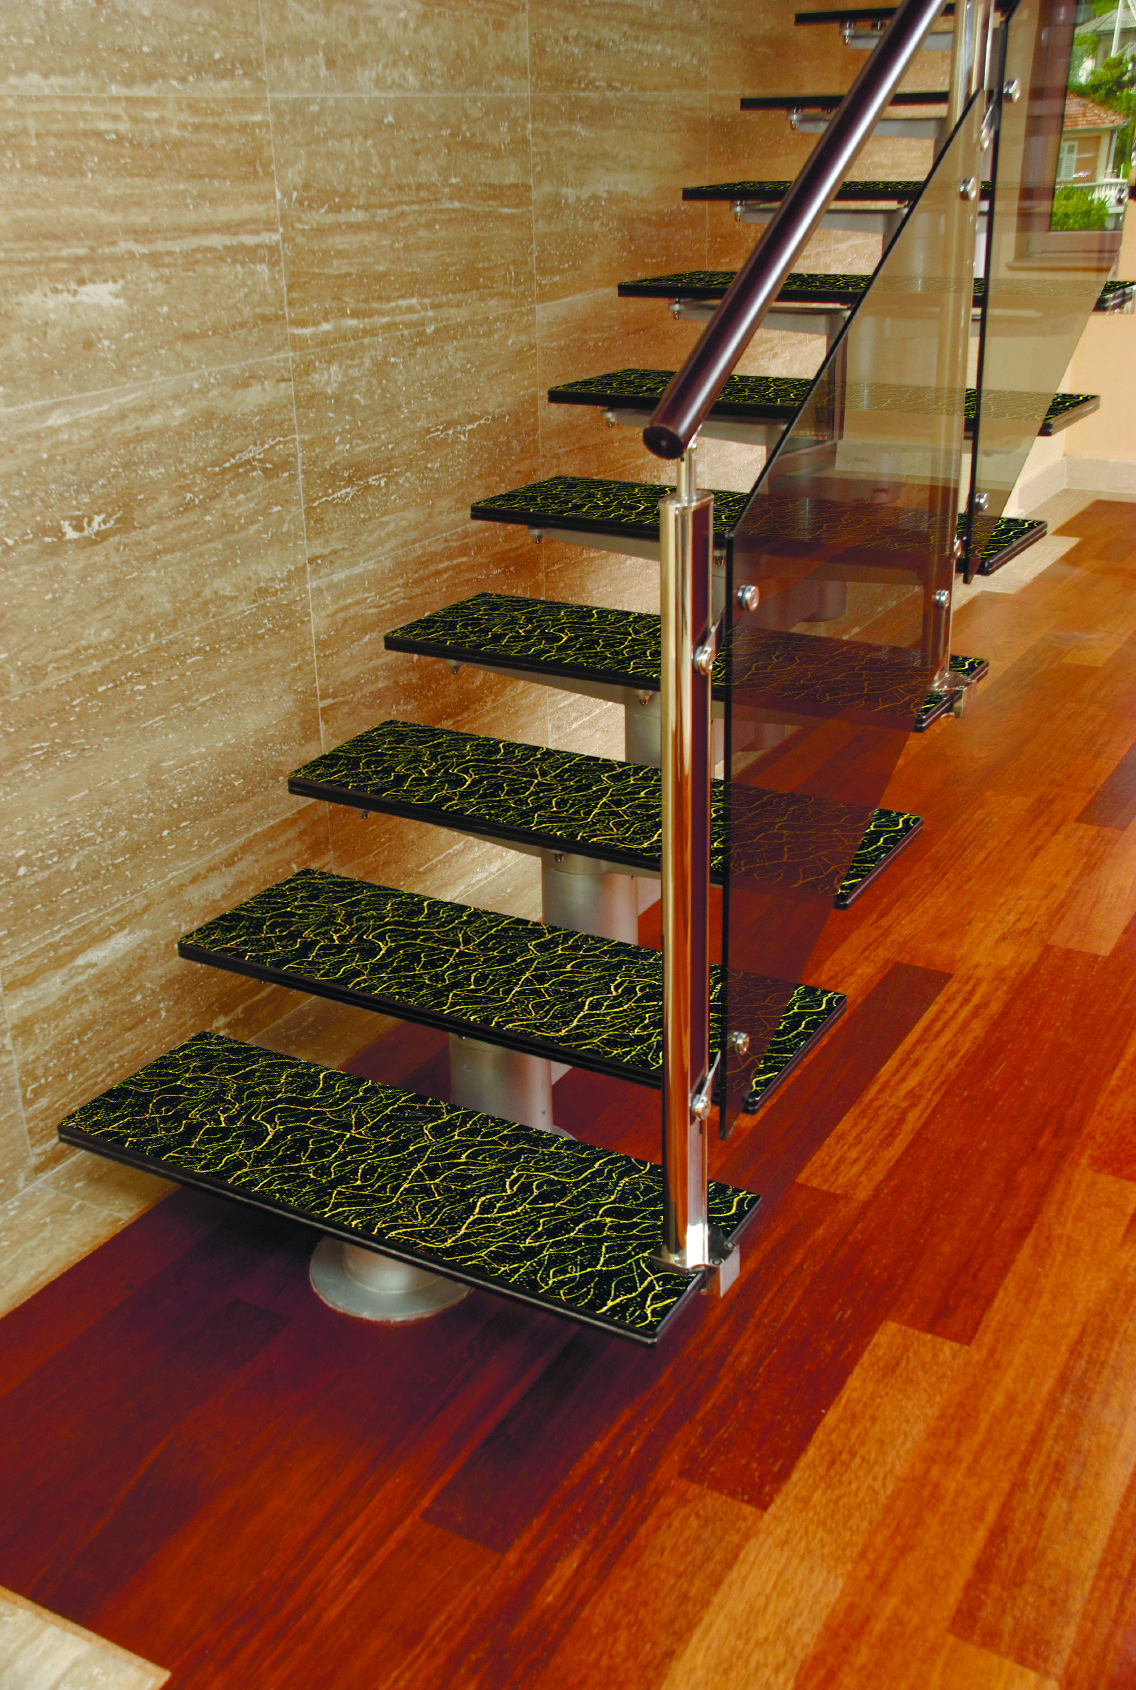 Acid Etched Glass Stairs in Green and Golden Patterns